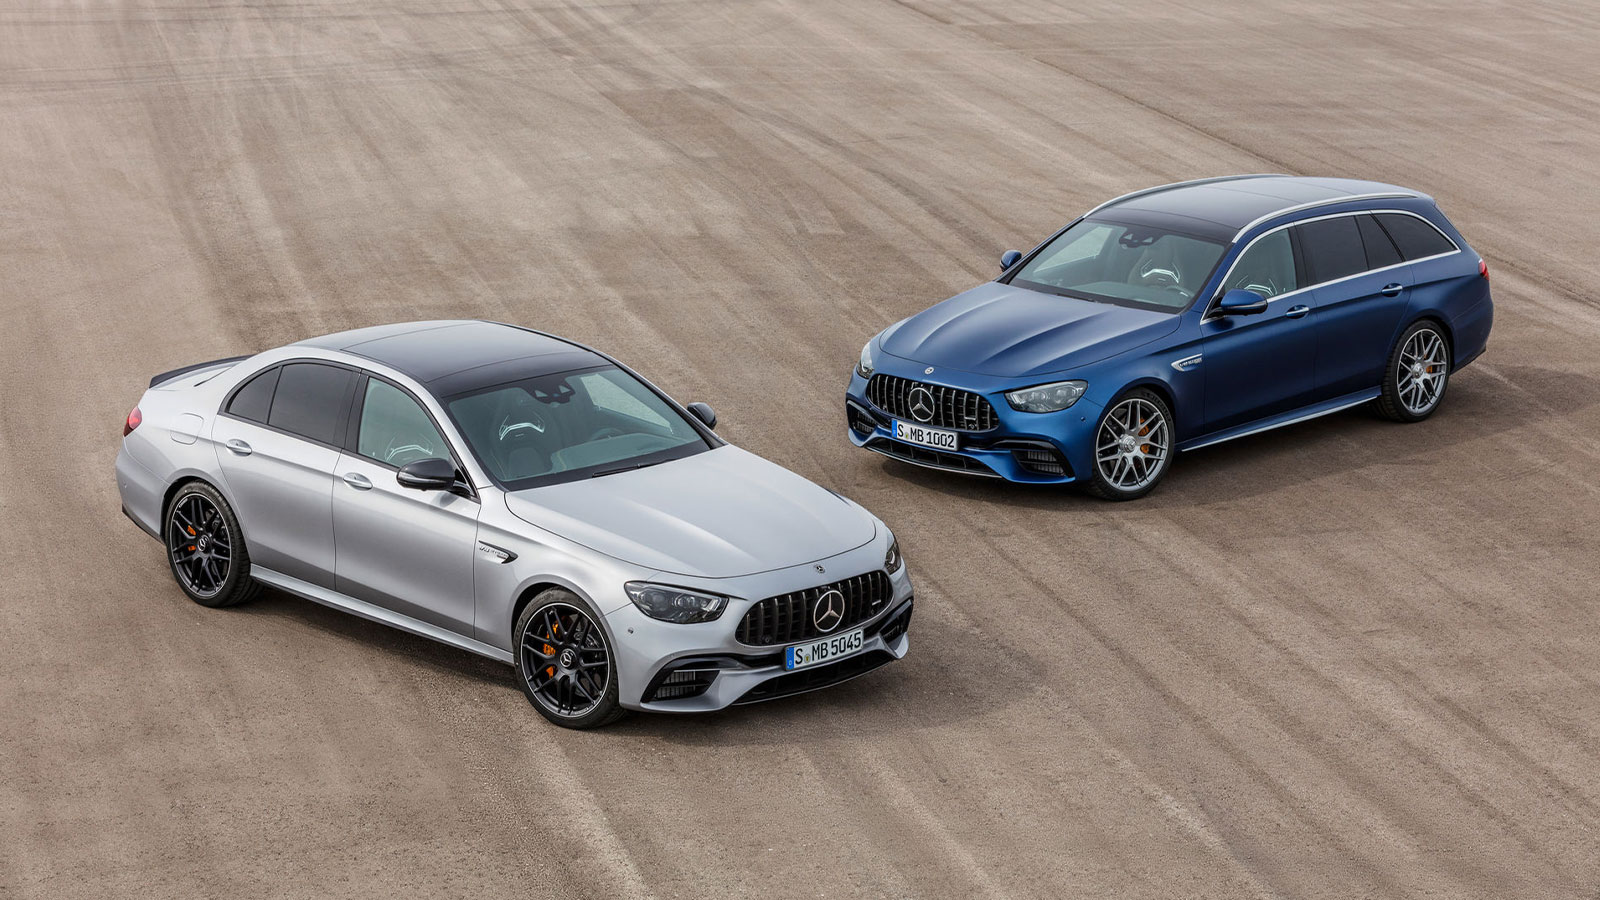 2021 Mercedes-AMG E 63 S Sedan & Wagon